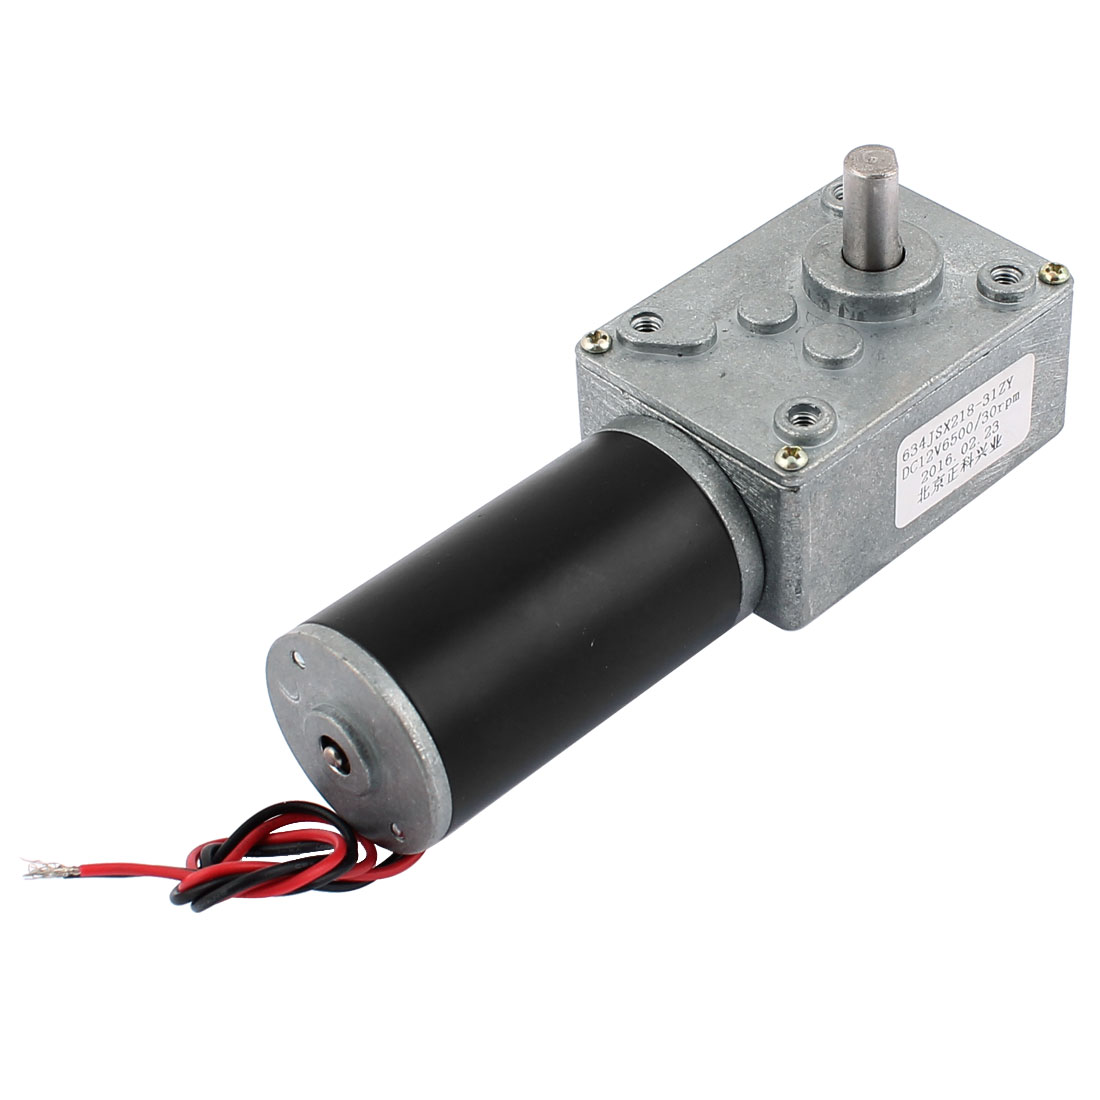 DC 12V 30RPM 8mmx14mm D-Shape Shaft Electric Power Turbo Worm Geared Motor